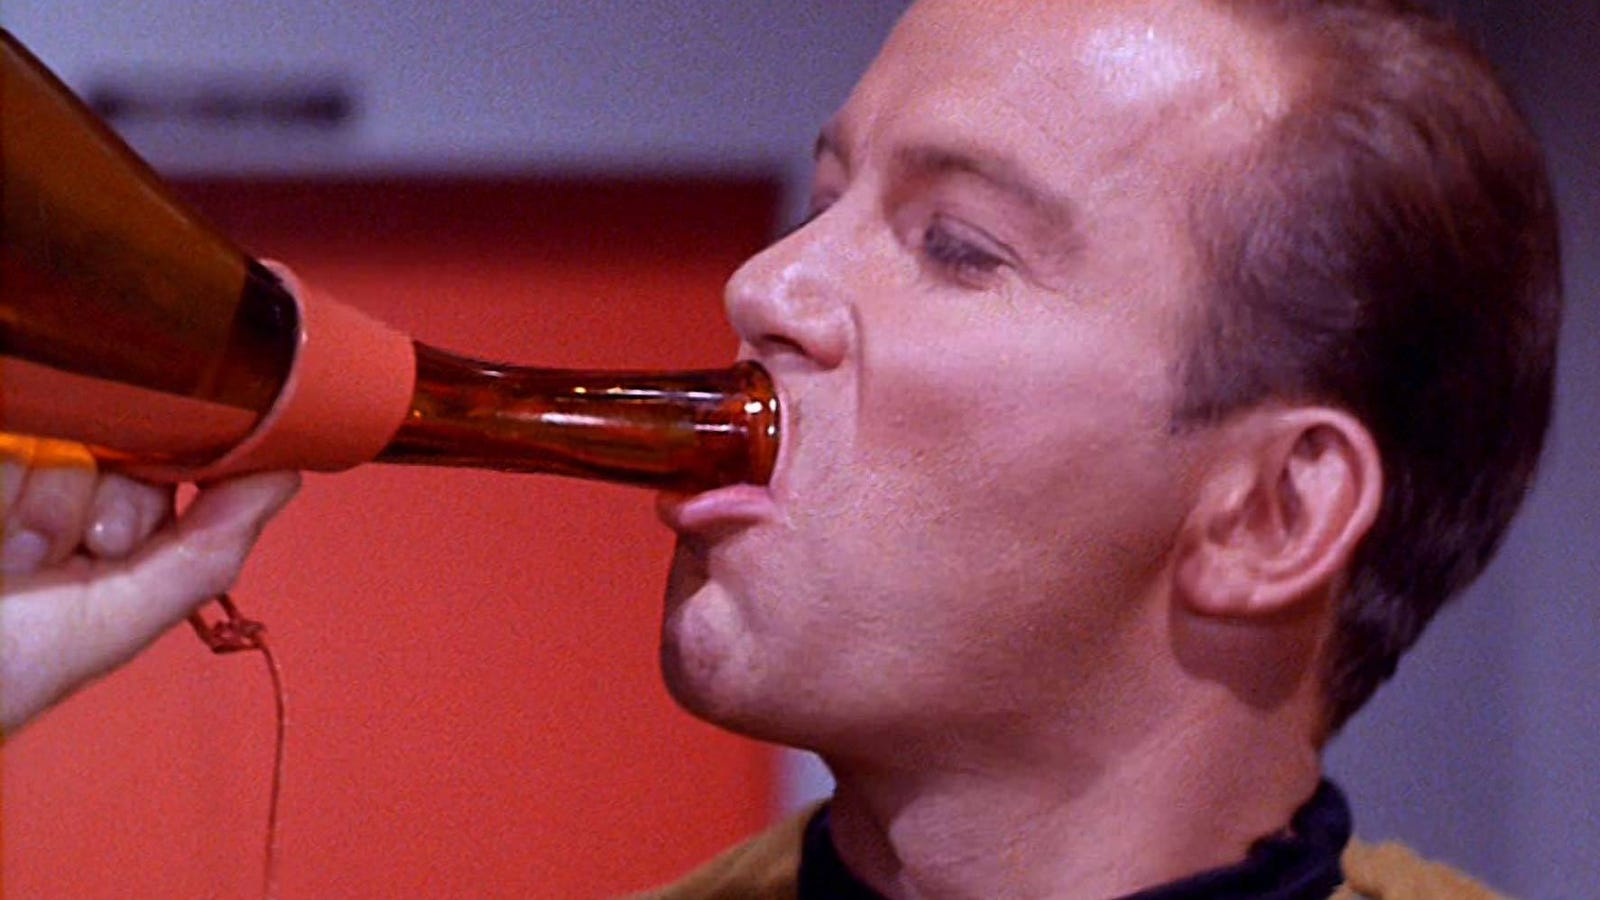 NASA: You Could Probably Make Wine In Space